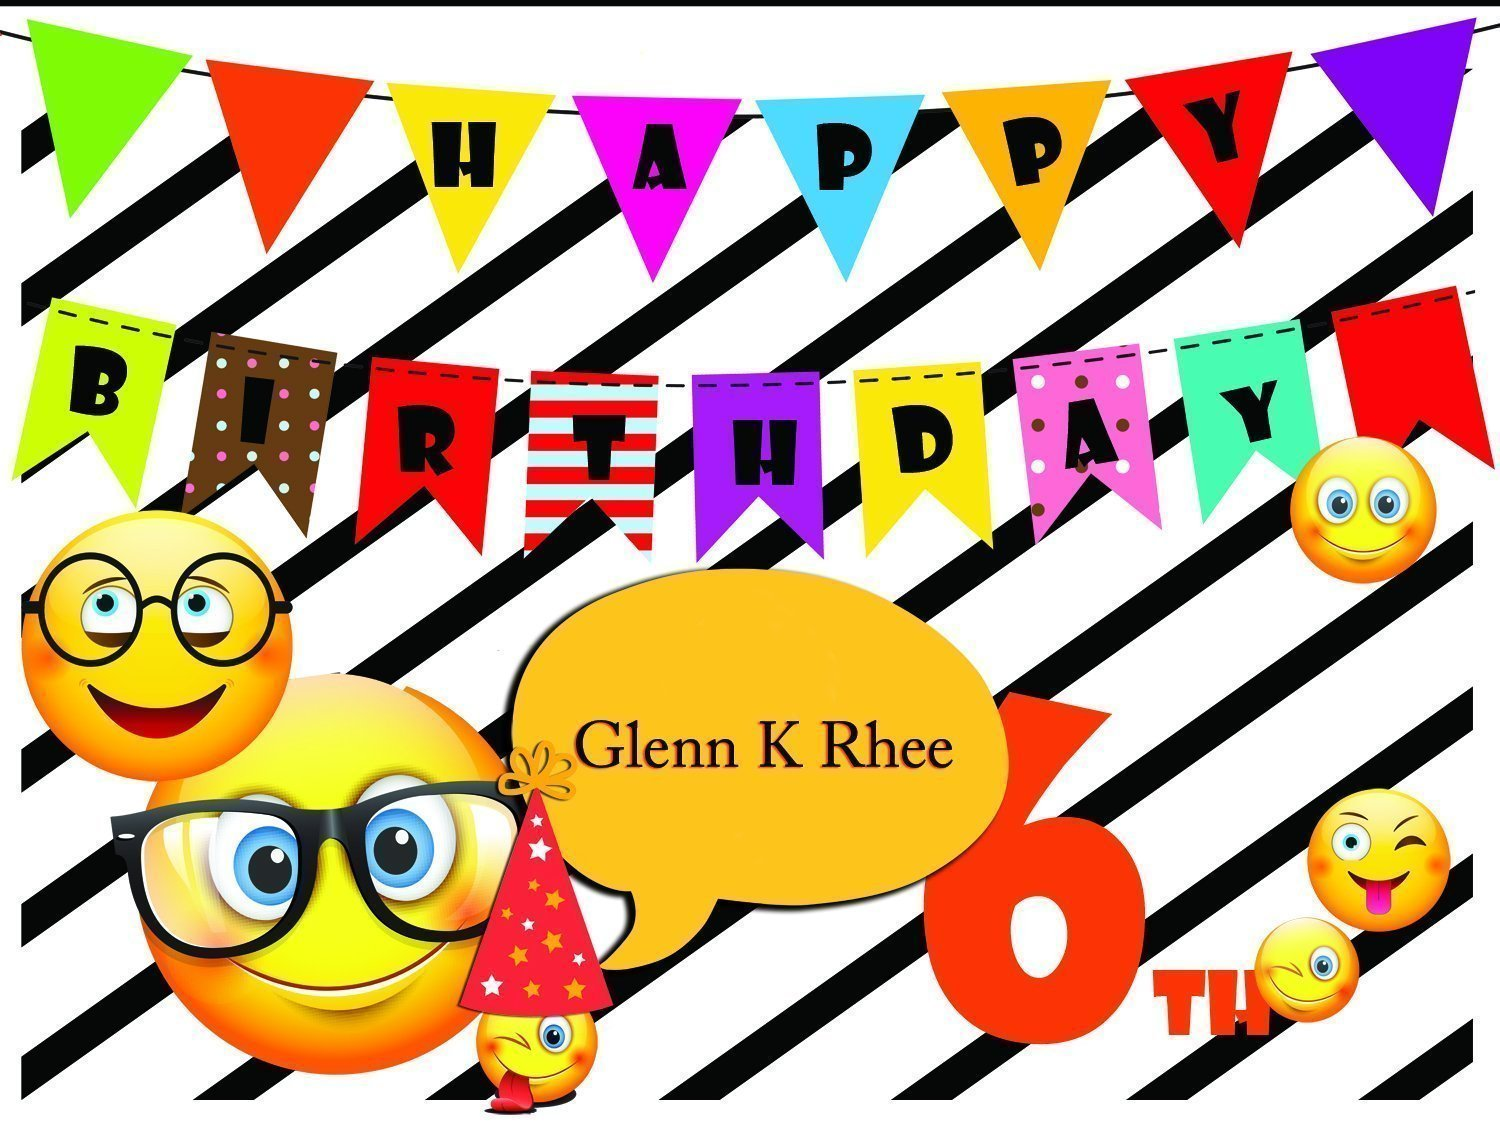 Custom Emoji Birthday Poster With Flags On A Black And White Striped Background For Kids